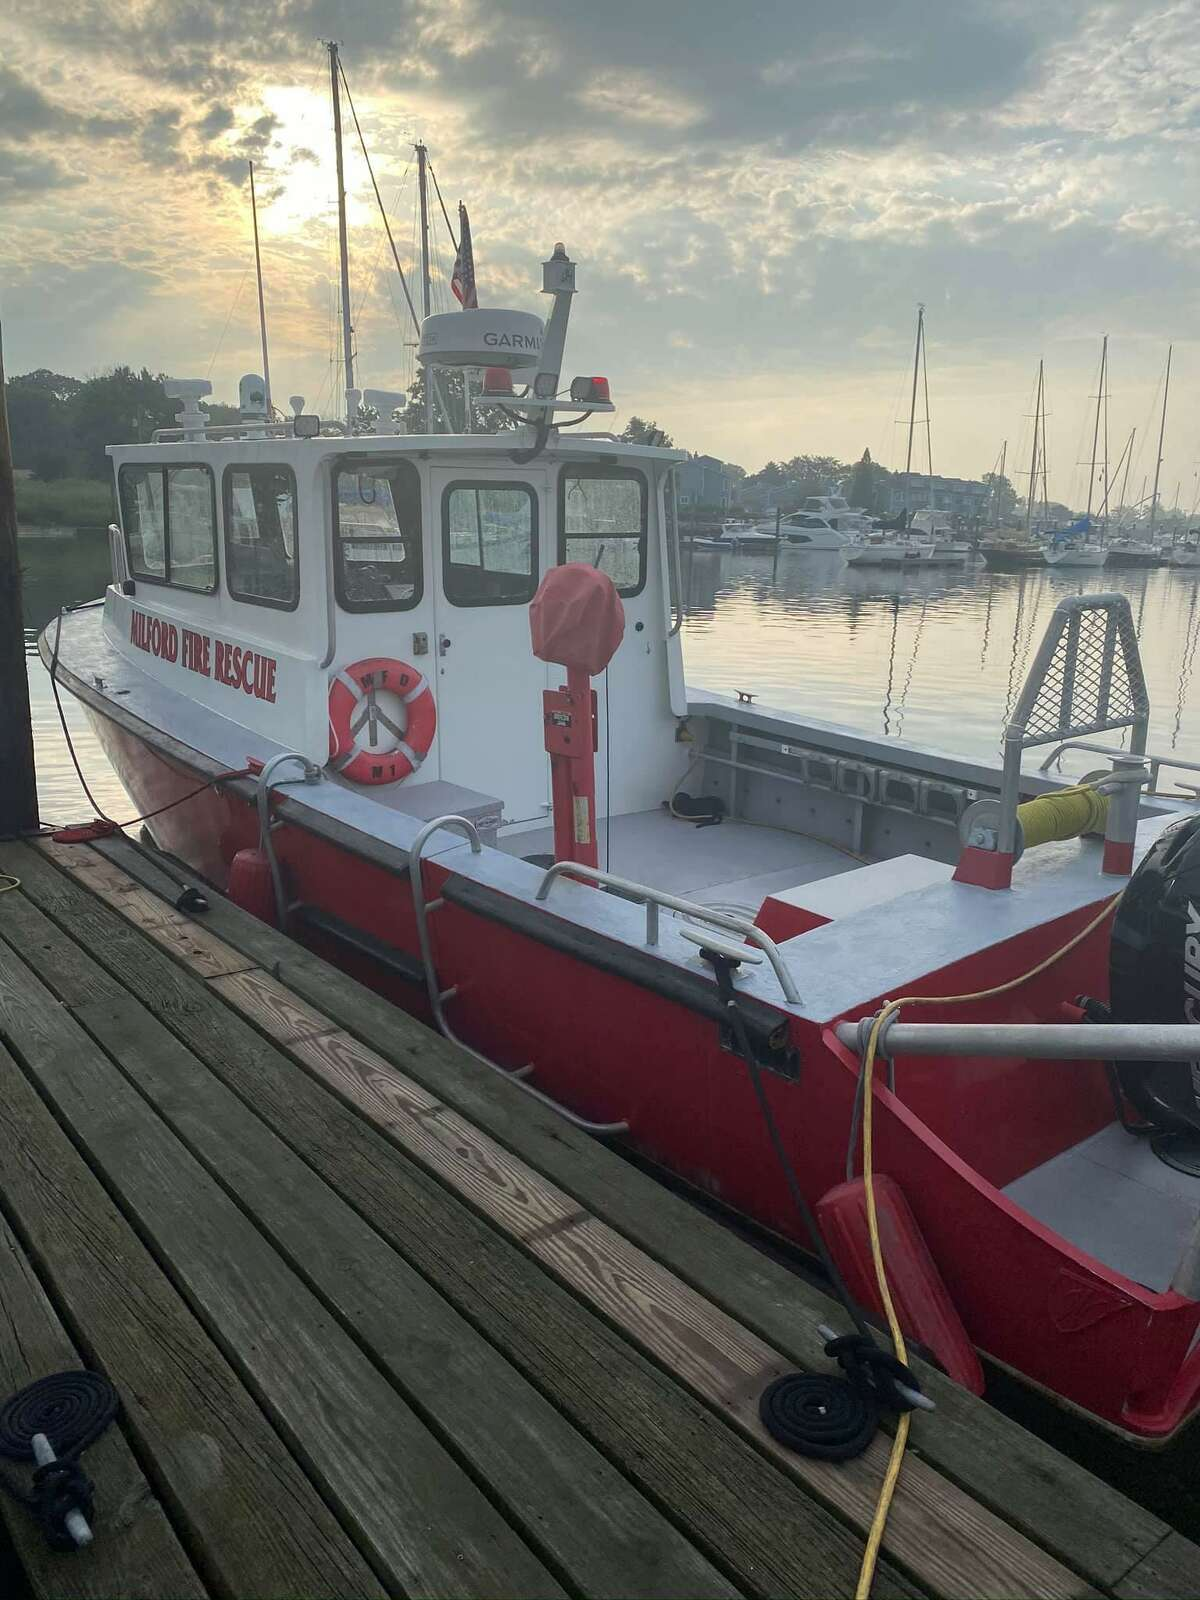 A jet ski collision near Cedar Beach off the shores of Milford, Conn., on Tuesday, July 27, 2021, left one person in critical condition, according to fire officials.